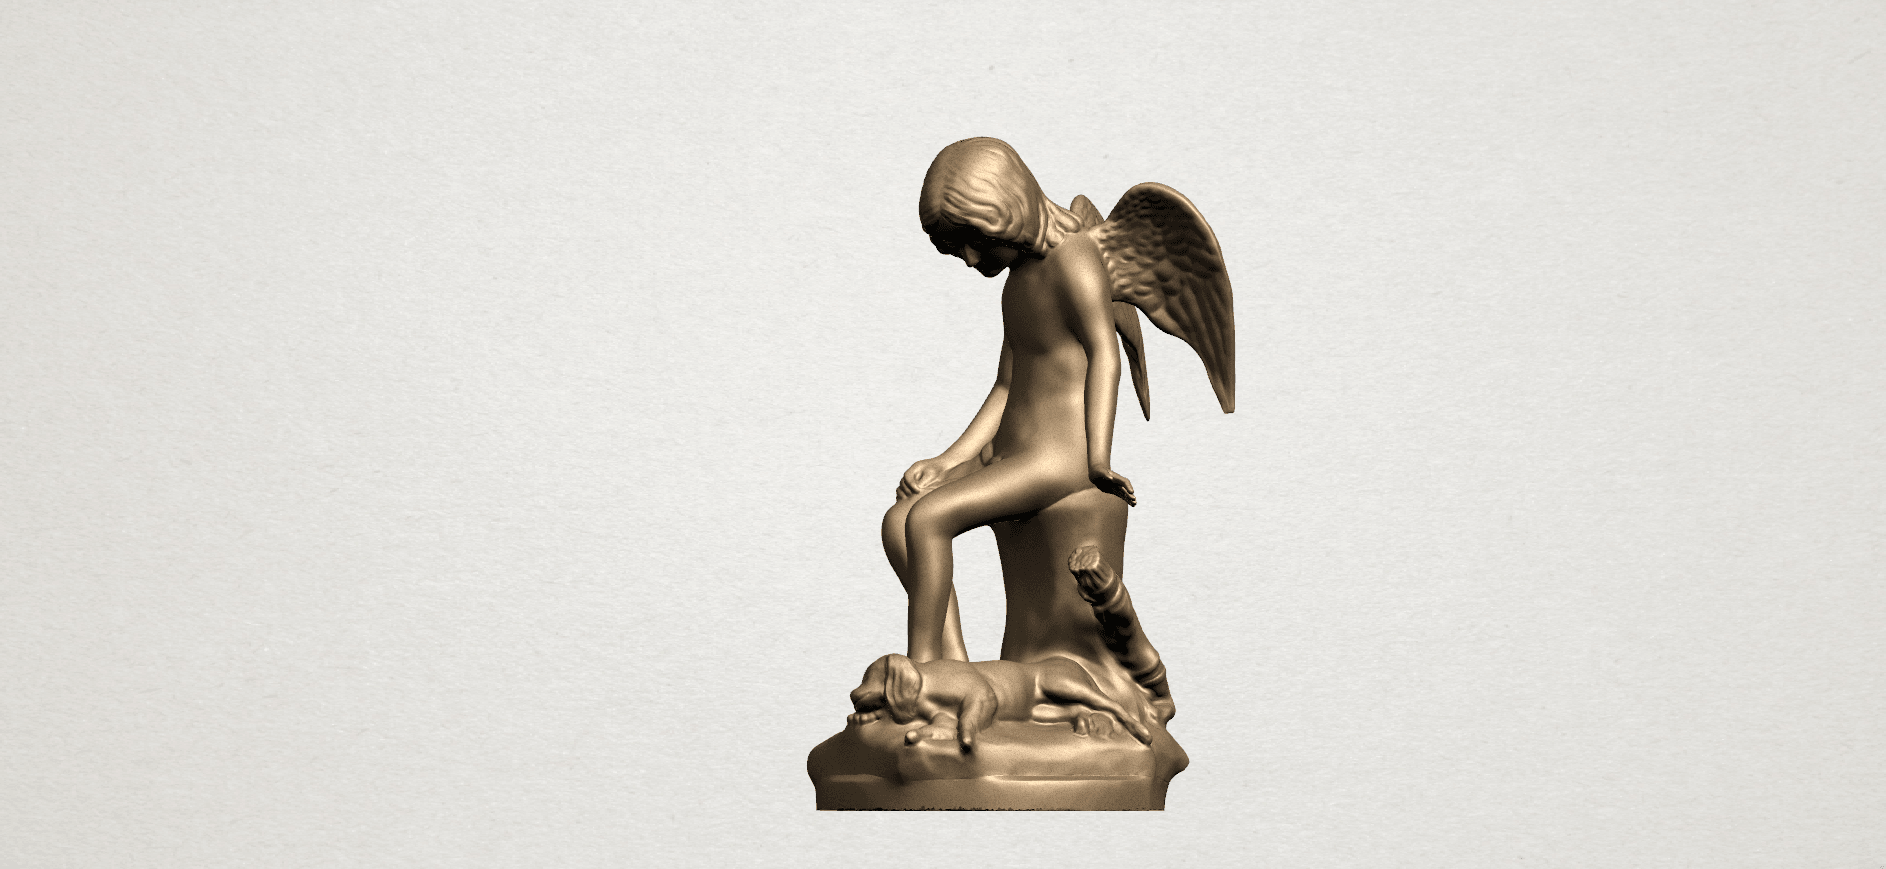 Angel and Dog A02.png Download free STL file Angel and Dog • 3D print model, GeorgesNikkei